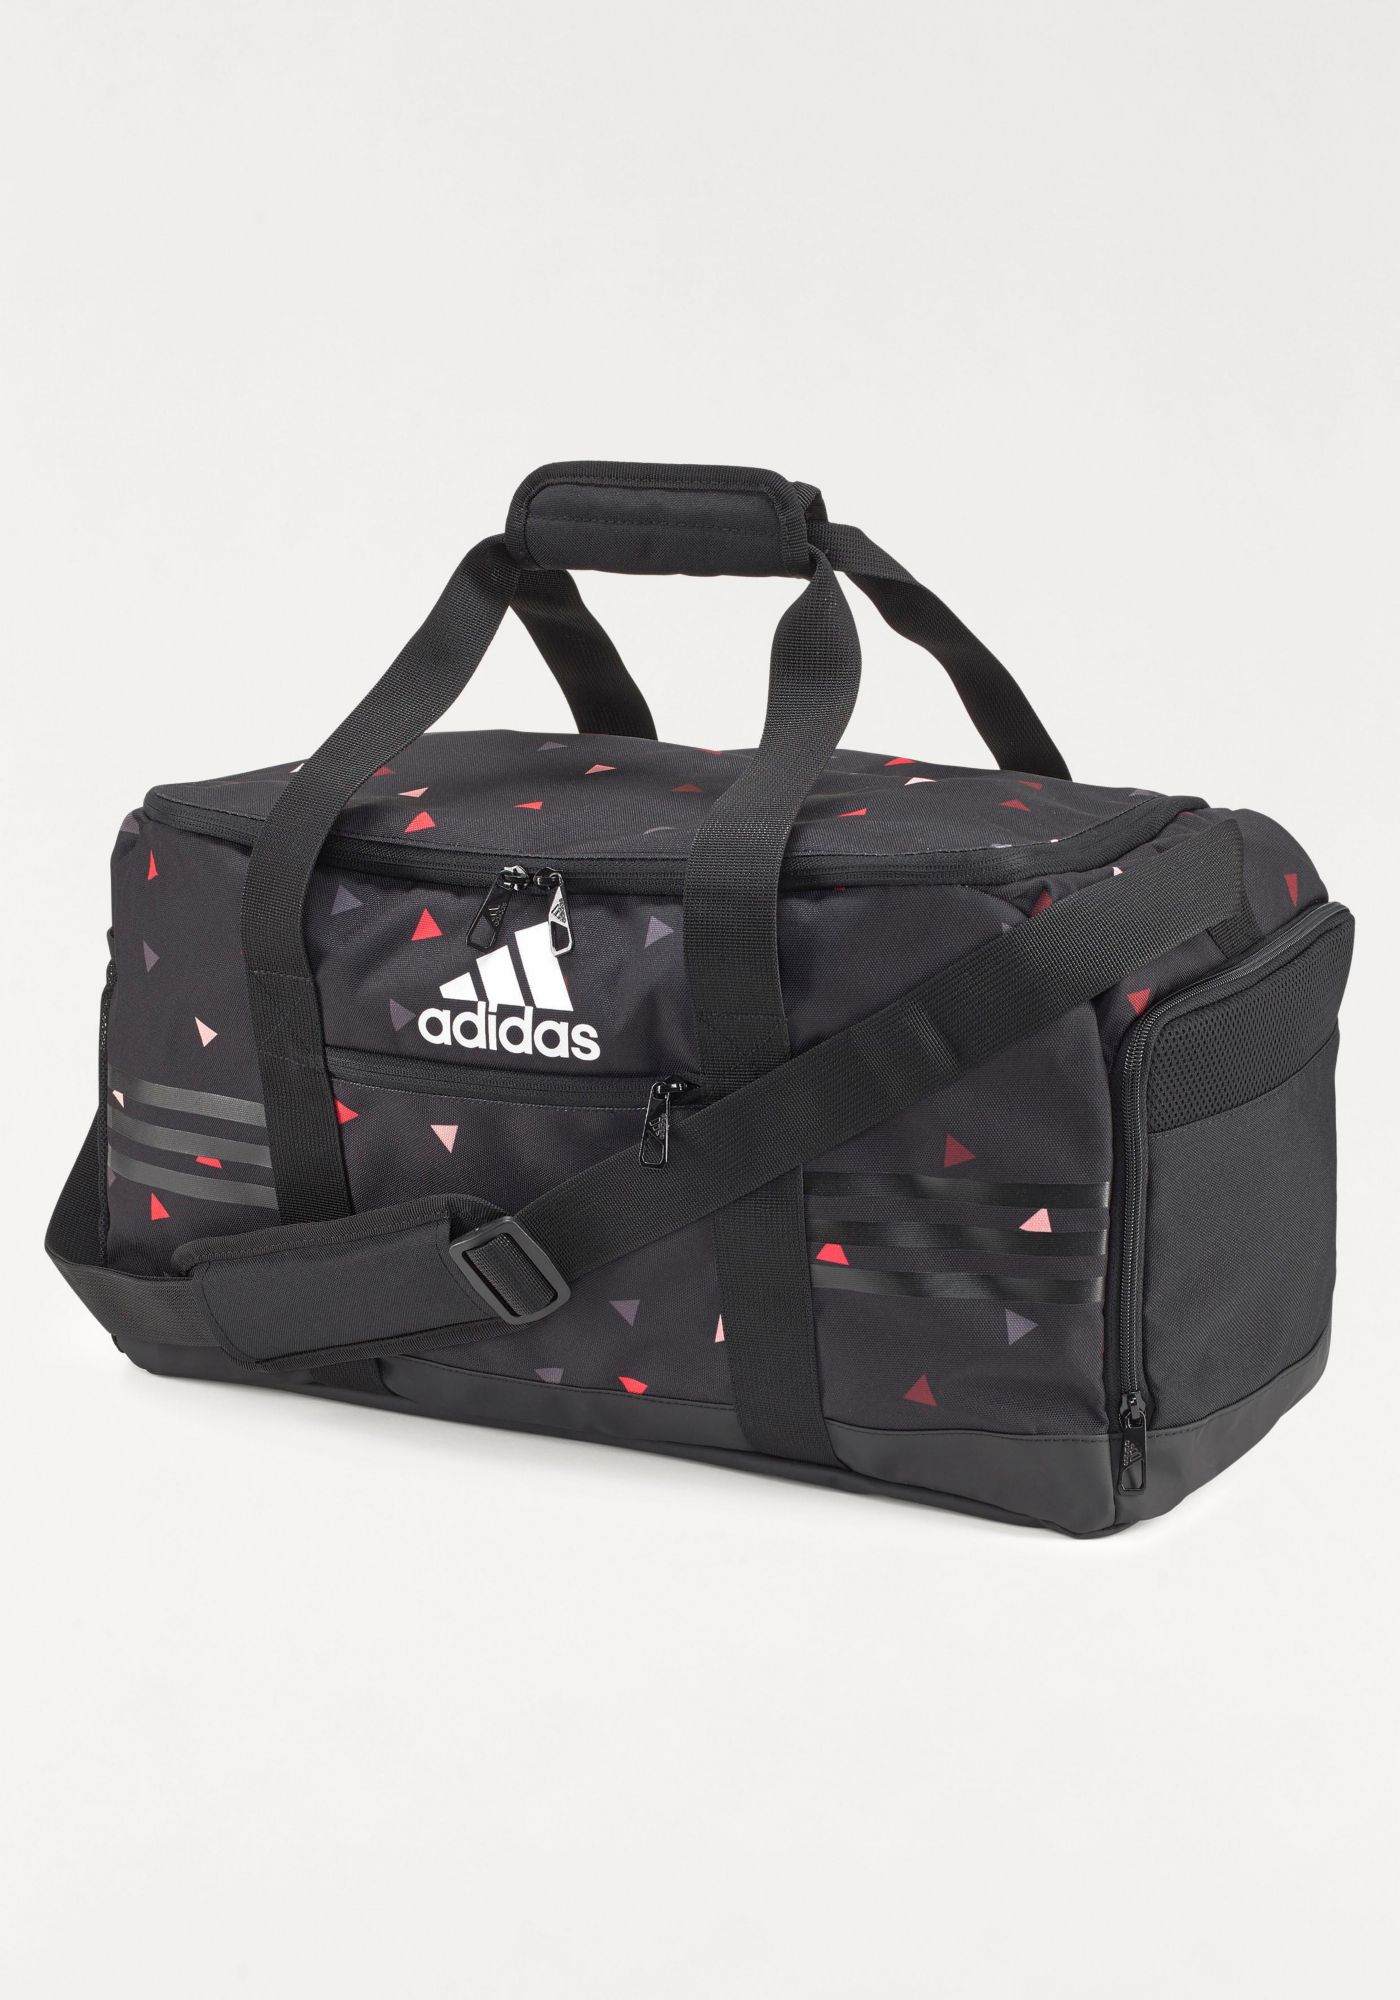 ADIDAS PERFORMANCE adidas Performance Sporttasche »3STRIPES PERFORMANCE TEAMBAG WOMEN'S«